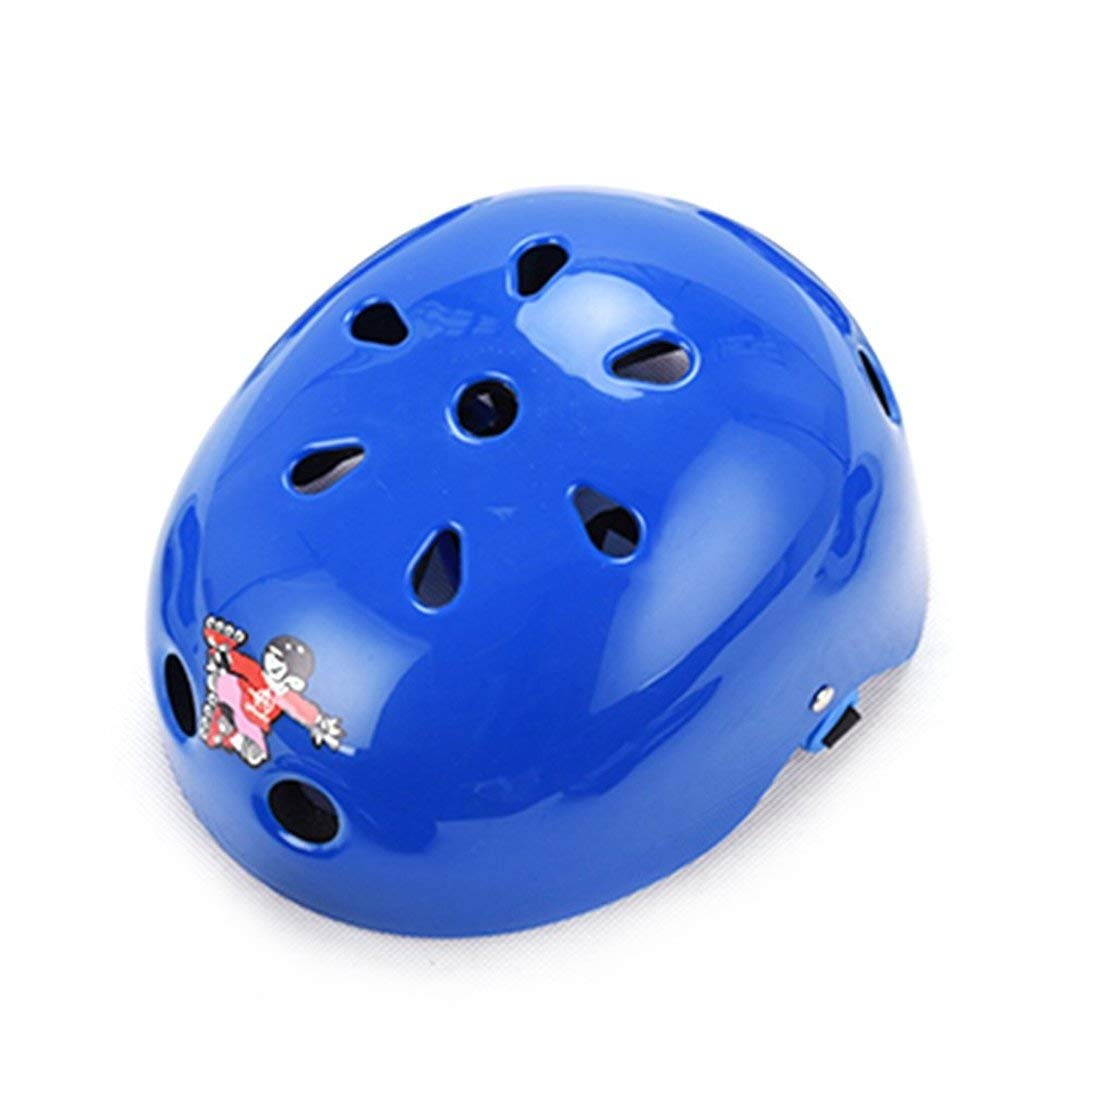 Cute Shape Ultralight Kids Roller Skating Helmet Snowboard Helmet for Safety Riding Skating Scooter Outdoor Extreme Sports Formulaone